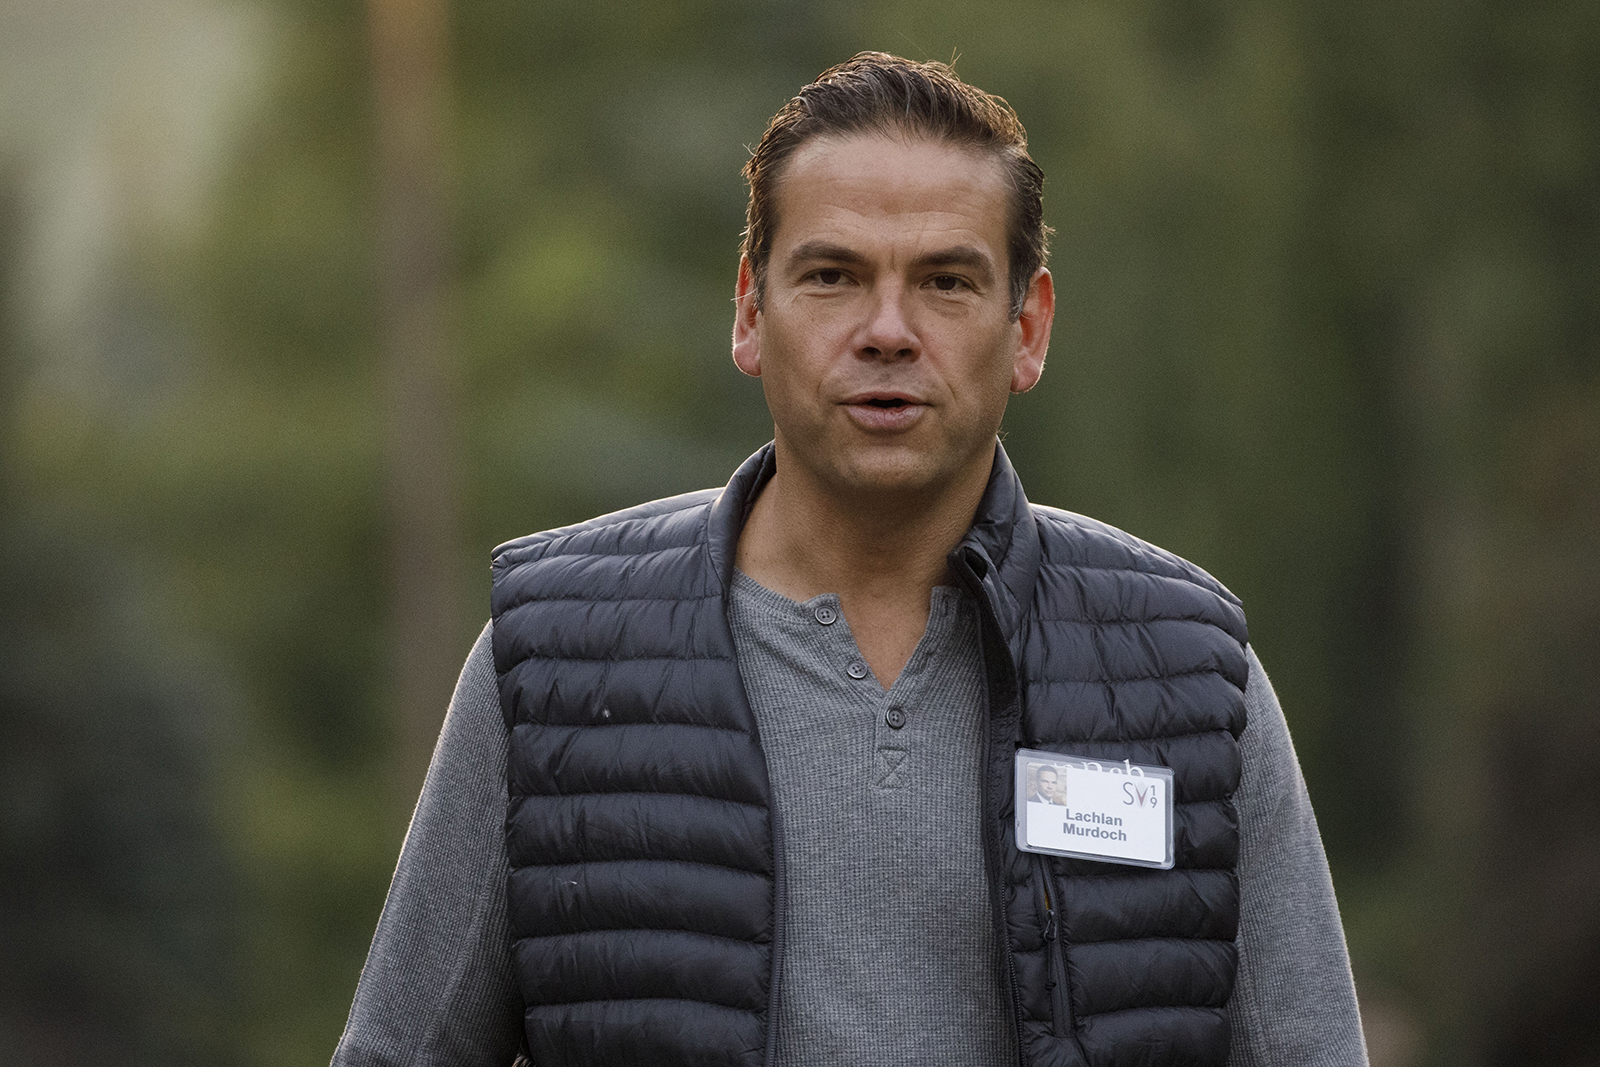 Lachlan Murdoch finally says it out loud: Fox is the 'loyal opposition' to Biden